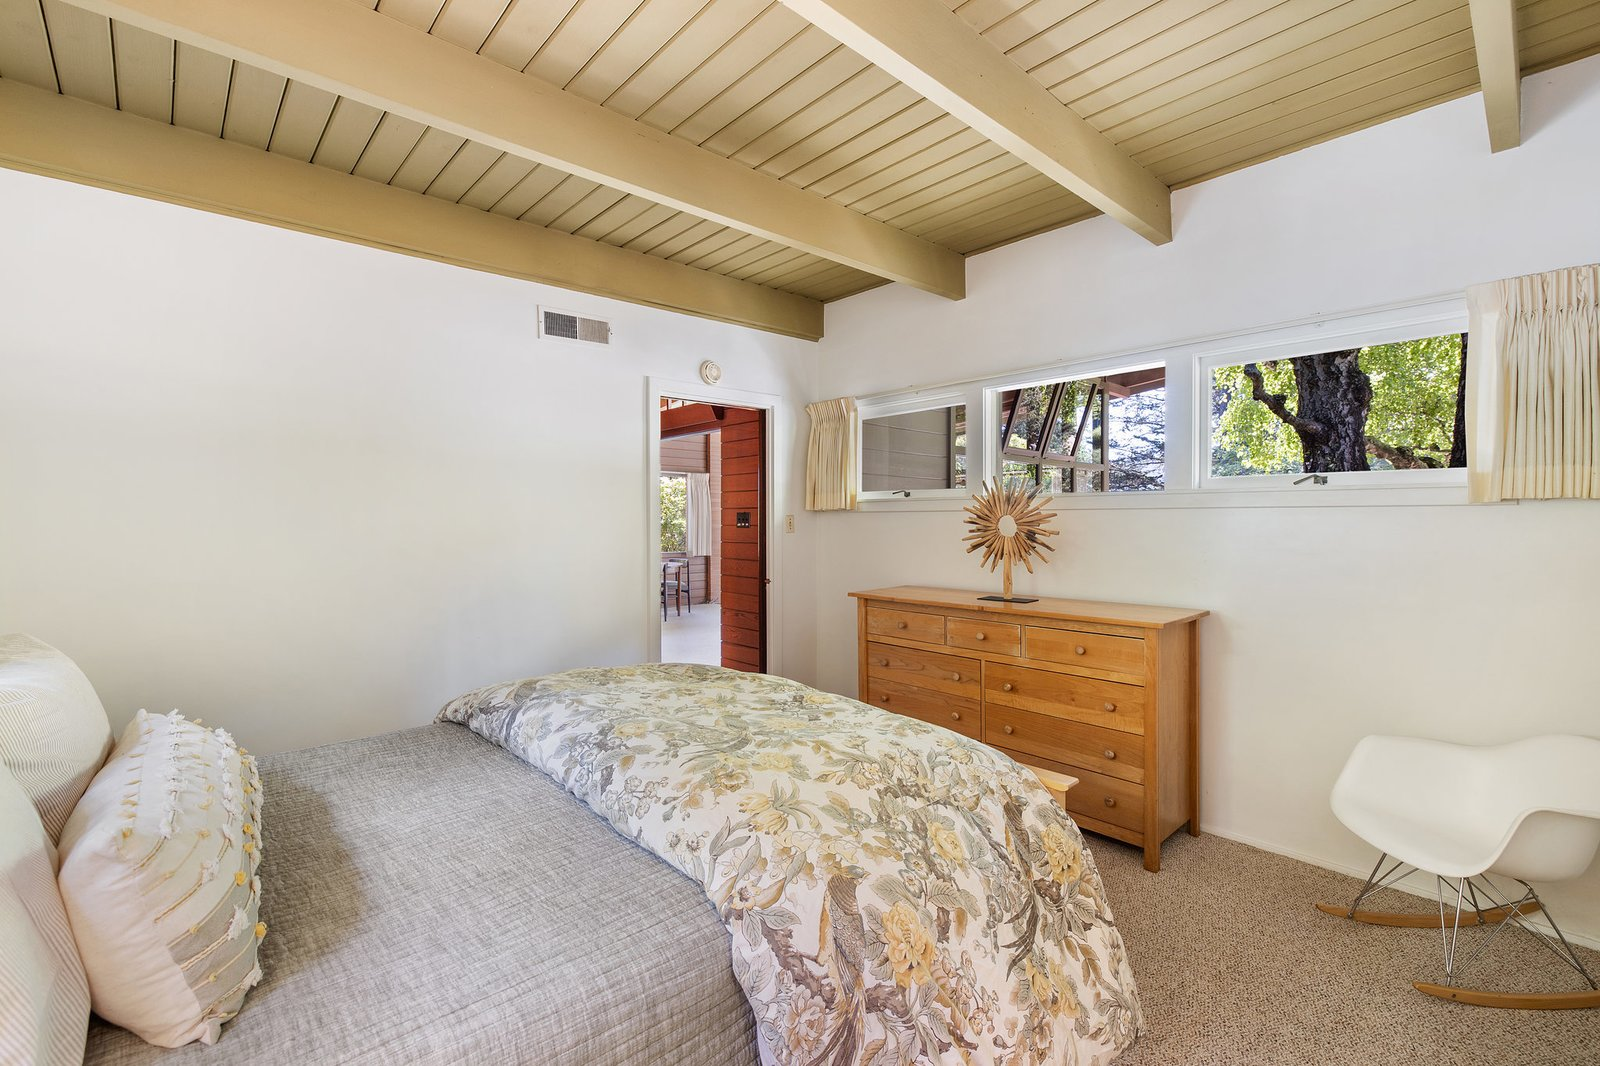 A peek at the single bedroom in the guest house.  Photo 19 of 21 in An Impeccable Midcentury Compound in the Berkeley Hills Wants $3.4M